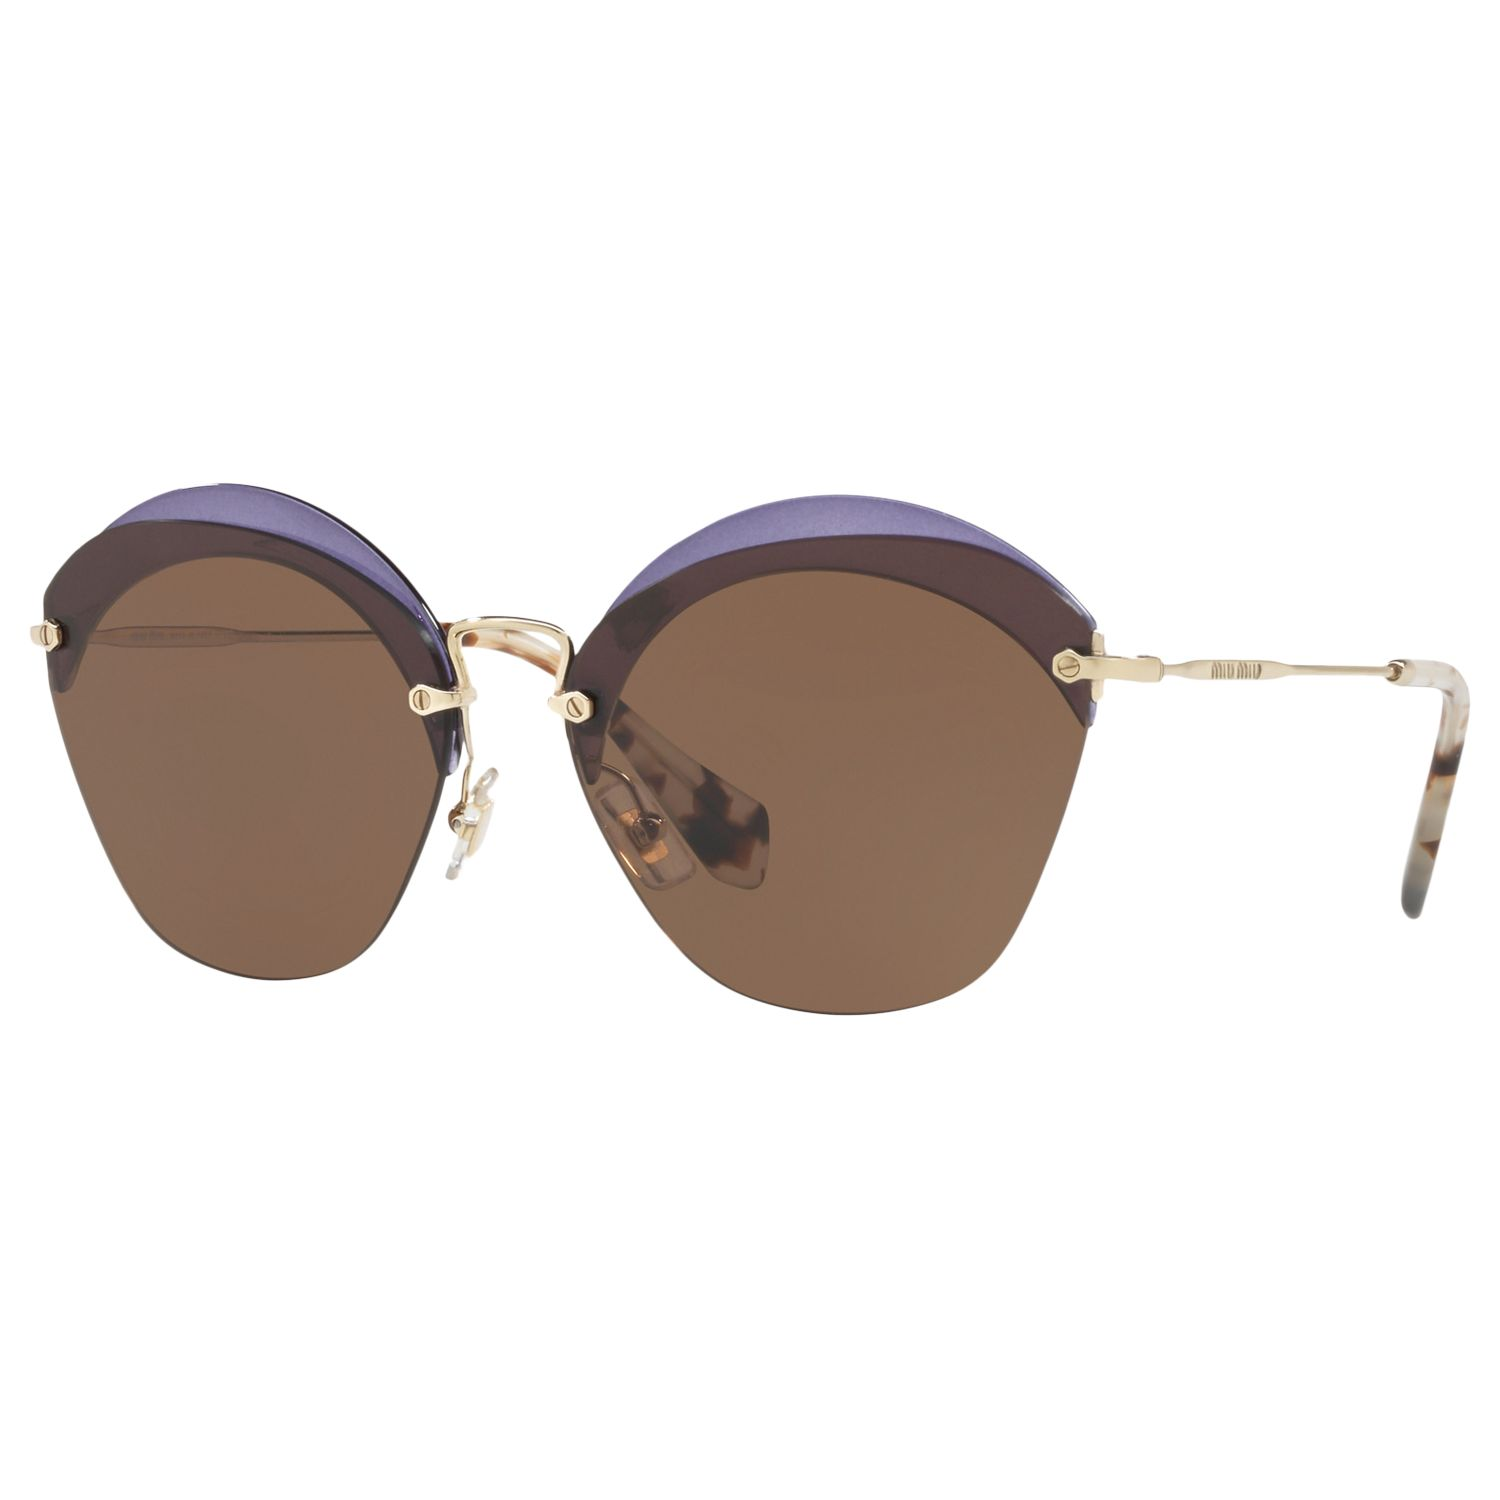 Miu Miu Miu Miu MU 53SS Oval Sunglasses, Brown